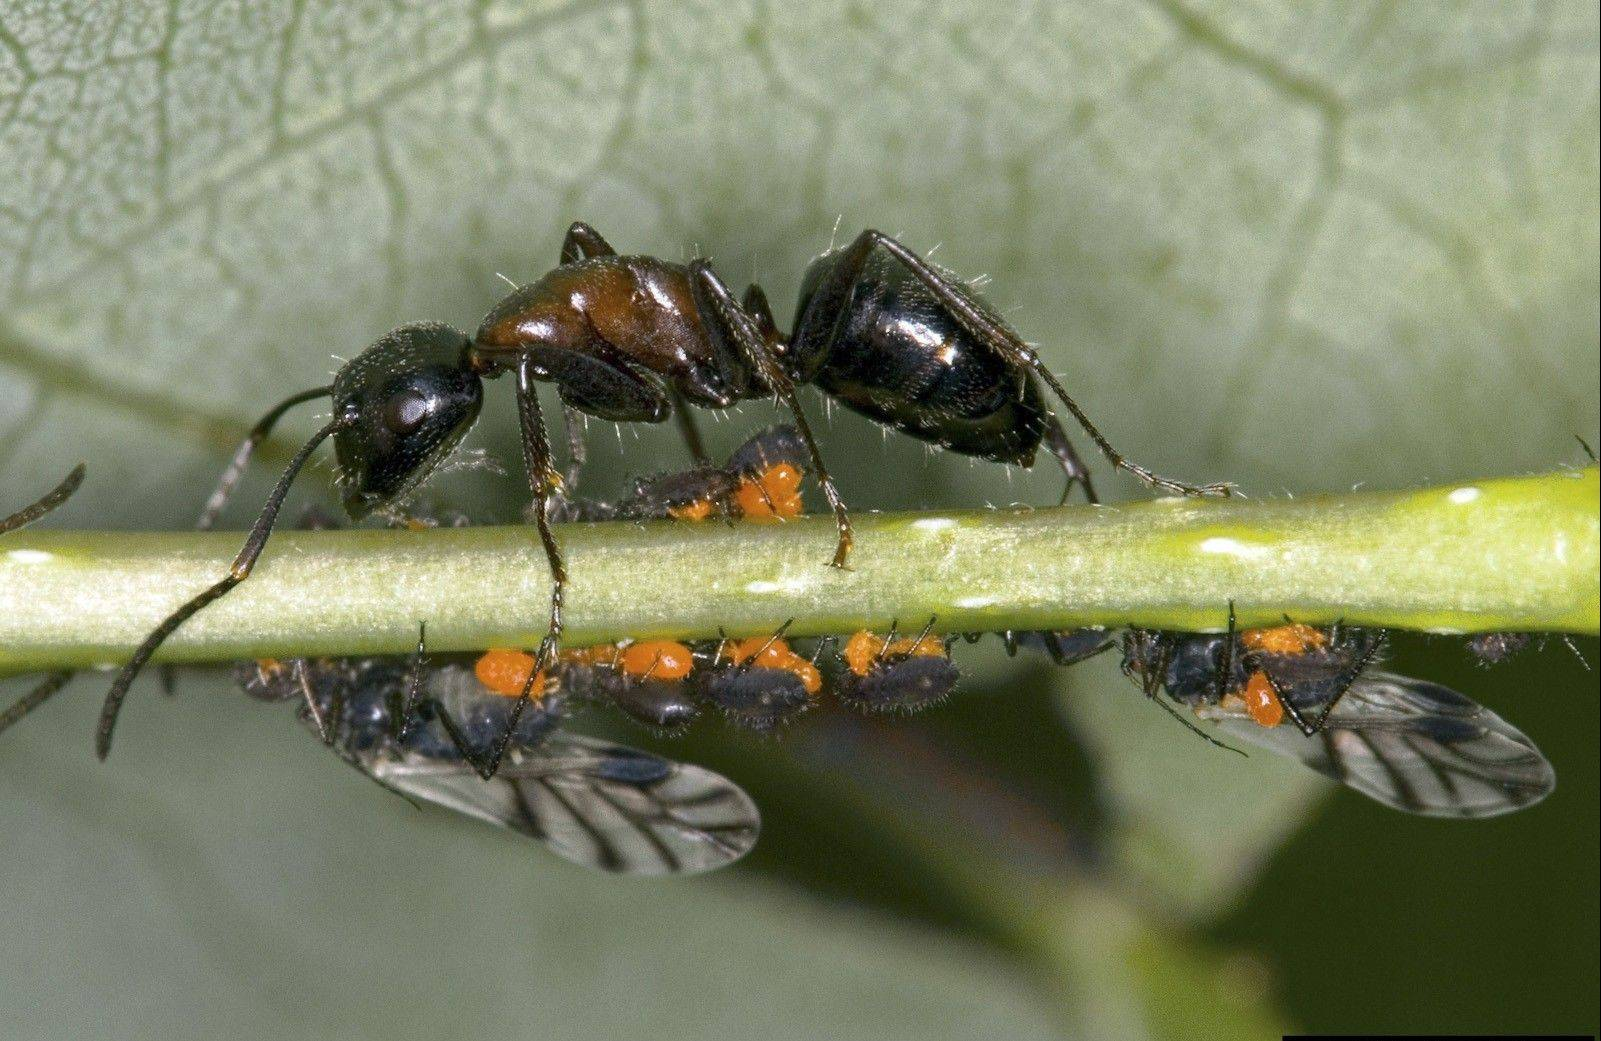 An ant tends aphids and their winged relatives. Ants feed on honeydew from certain plants including vegetables.